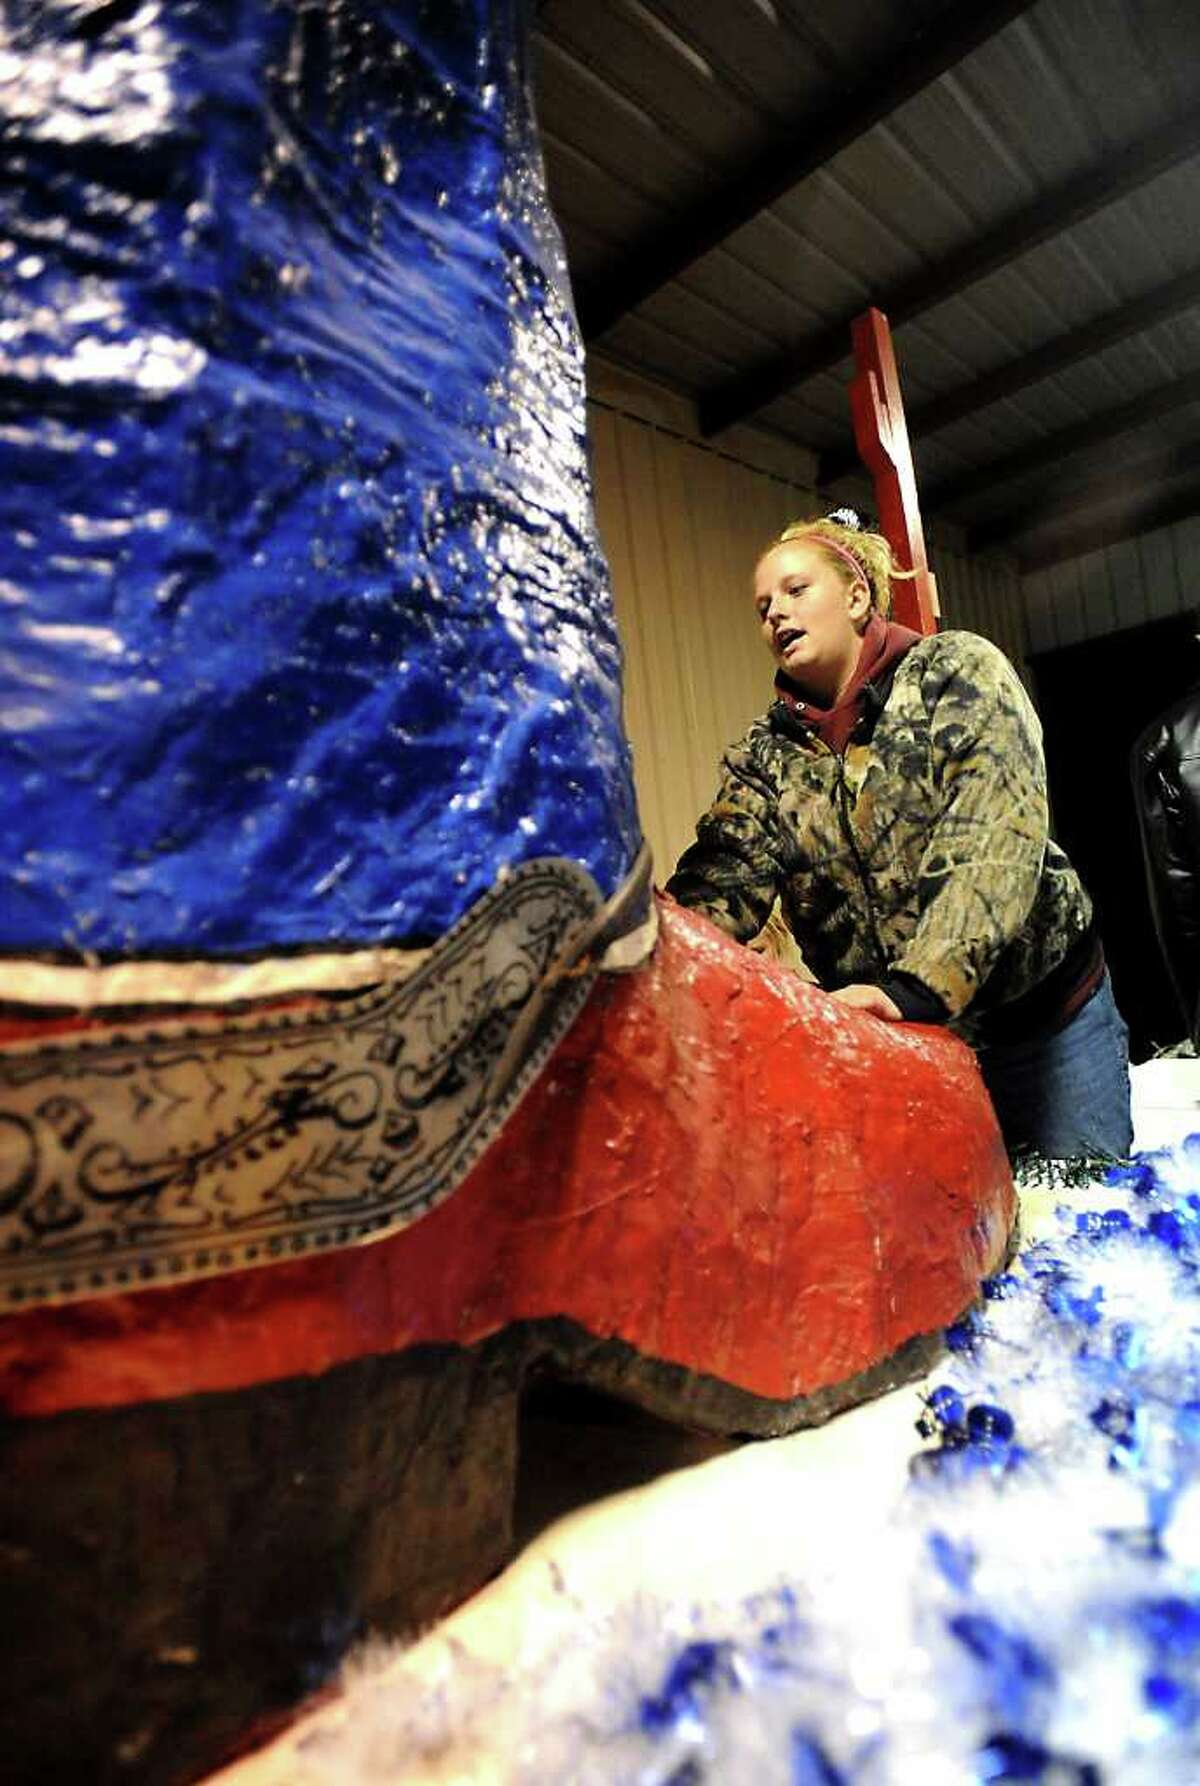 Camrie Helm of the LEO Junior Lion Club helps set up the Lion Club Christmas Parade Float in Orange. The parade begins at 6:30 p.m. Friday. Tammy McKinley/The Enterprise